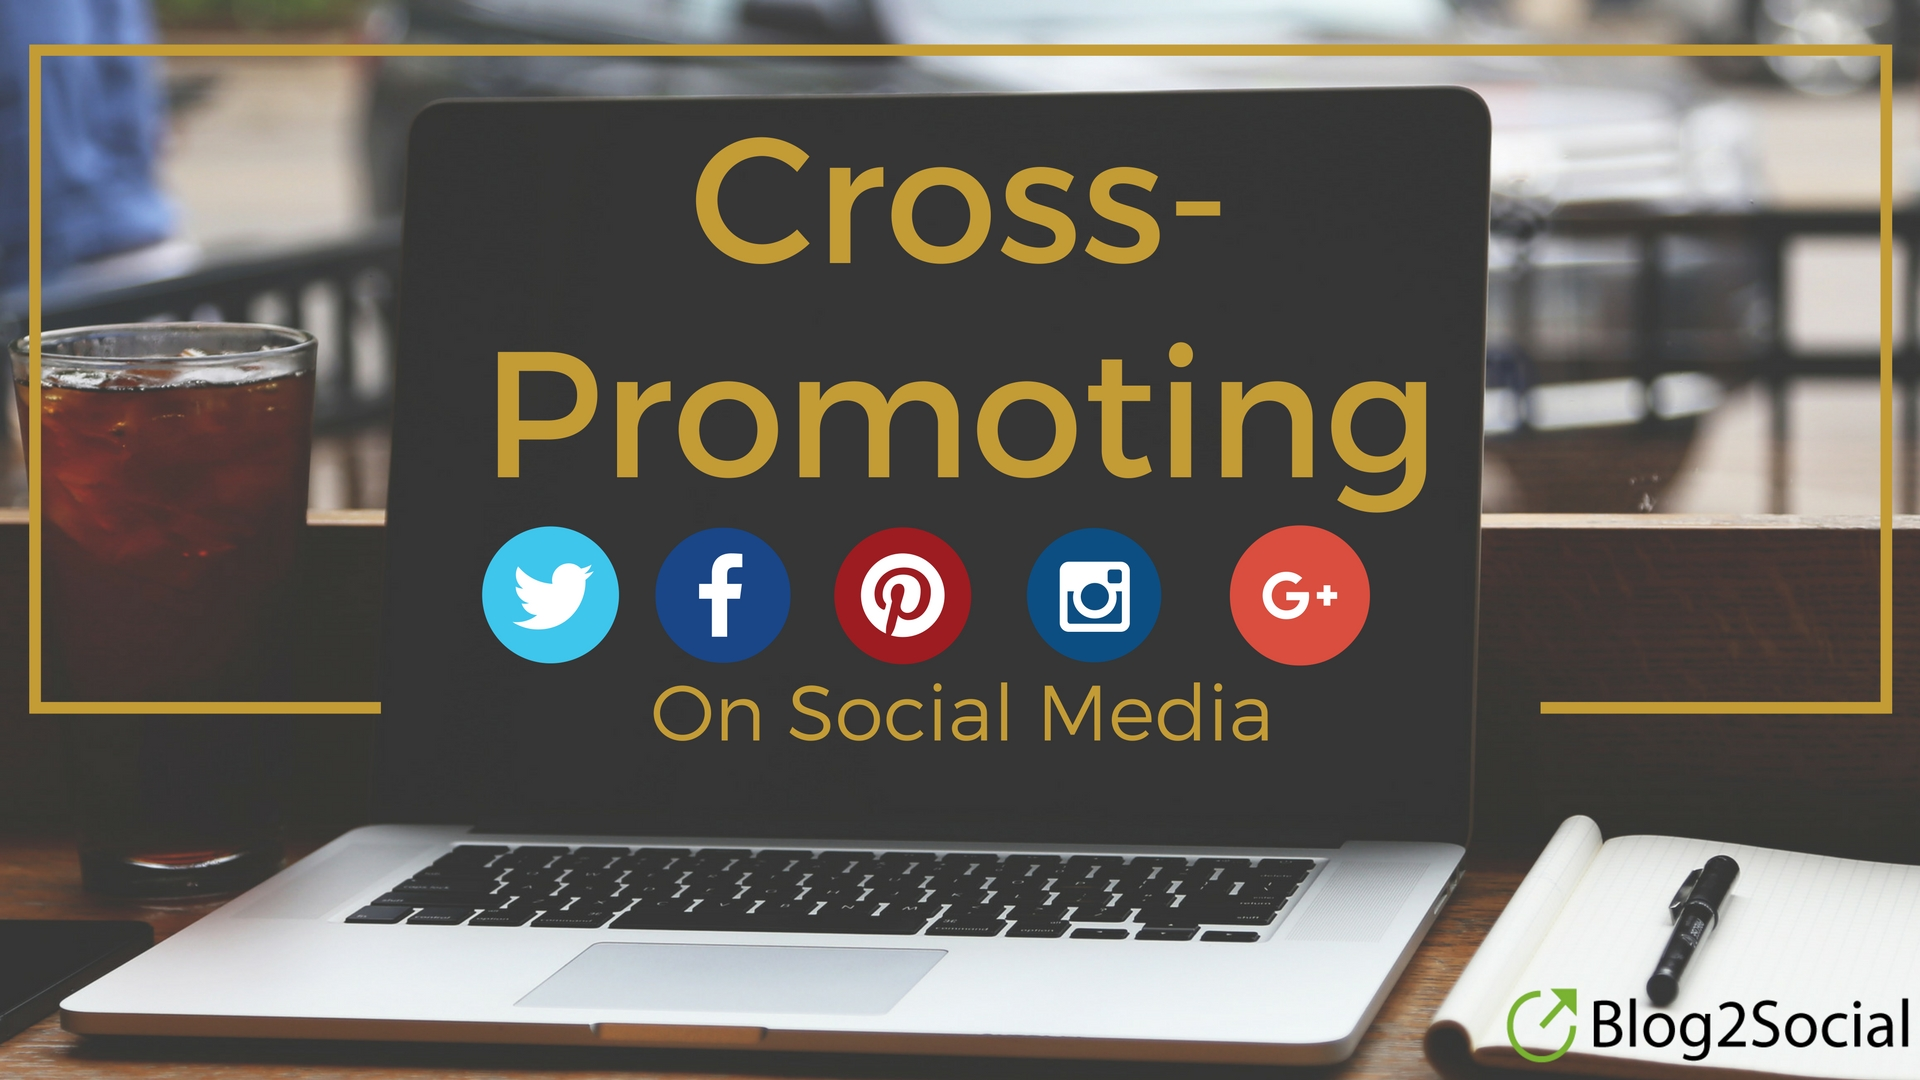 Cross-Promoting On Social Media